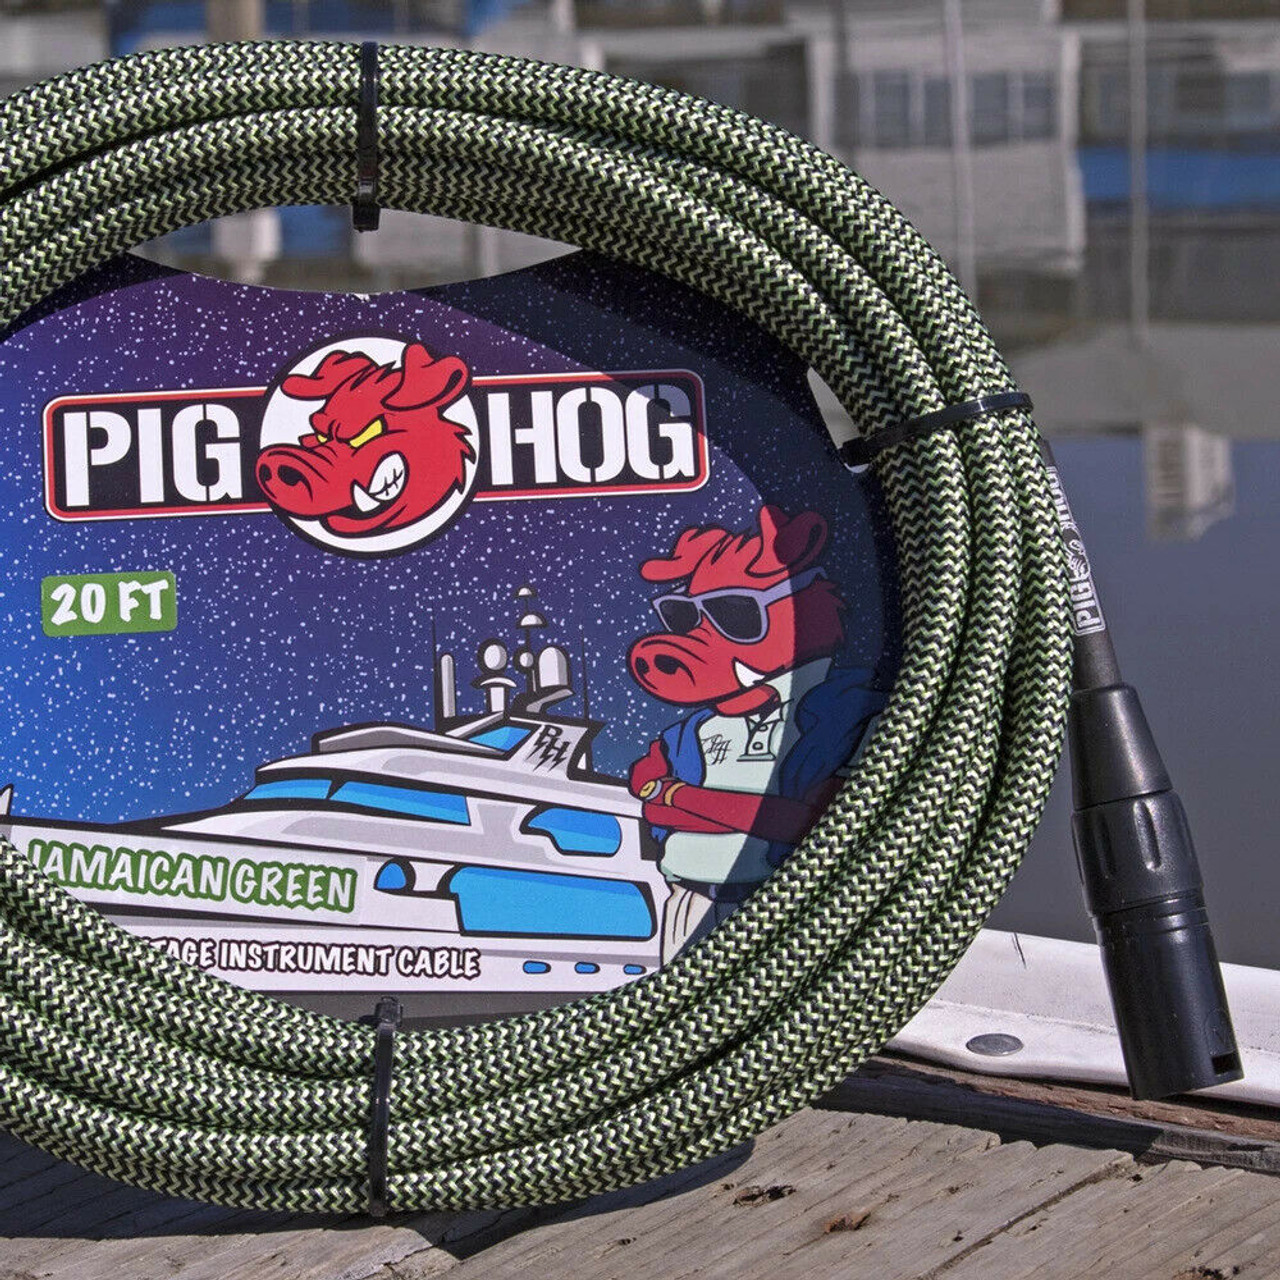 Pig Hog PHM20JGR Green Woven High Performance XLR Microphone Cable, 20 Ft